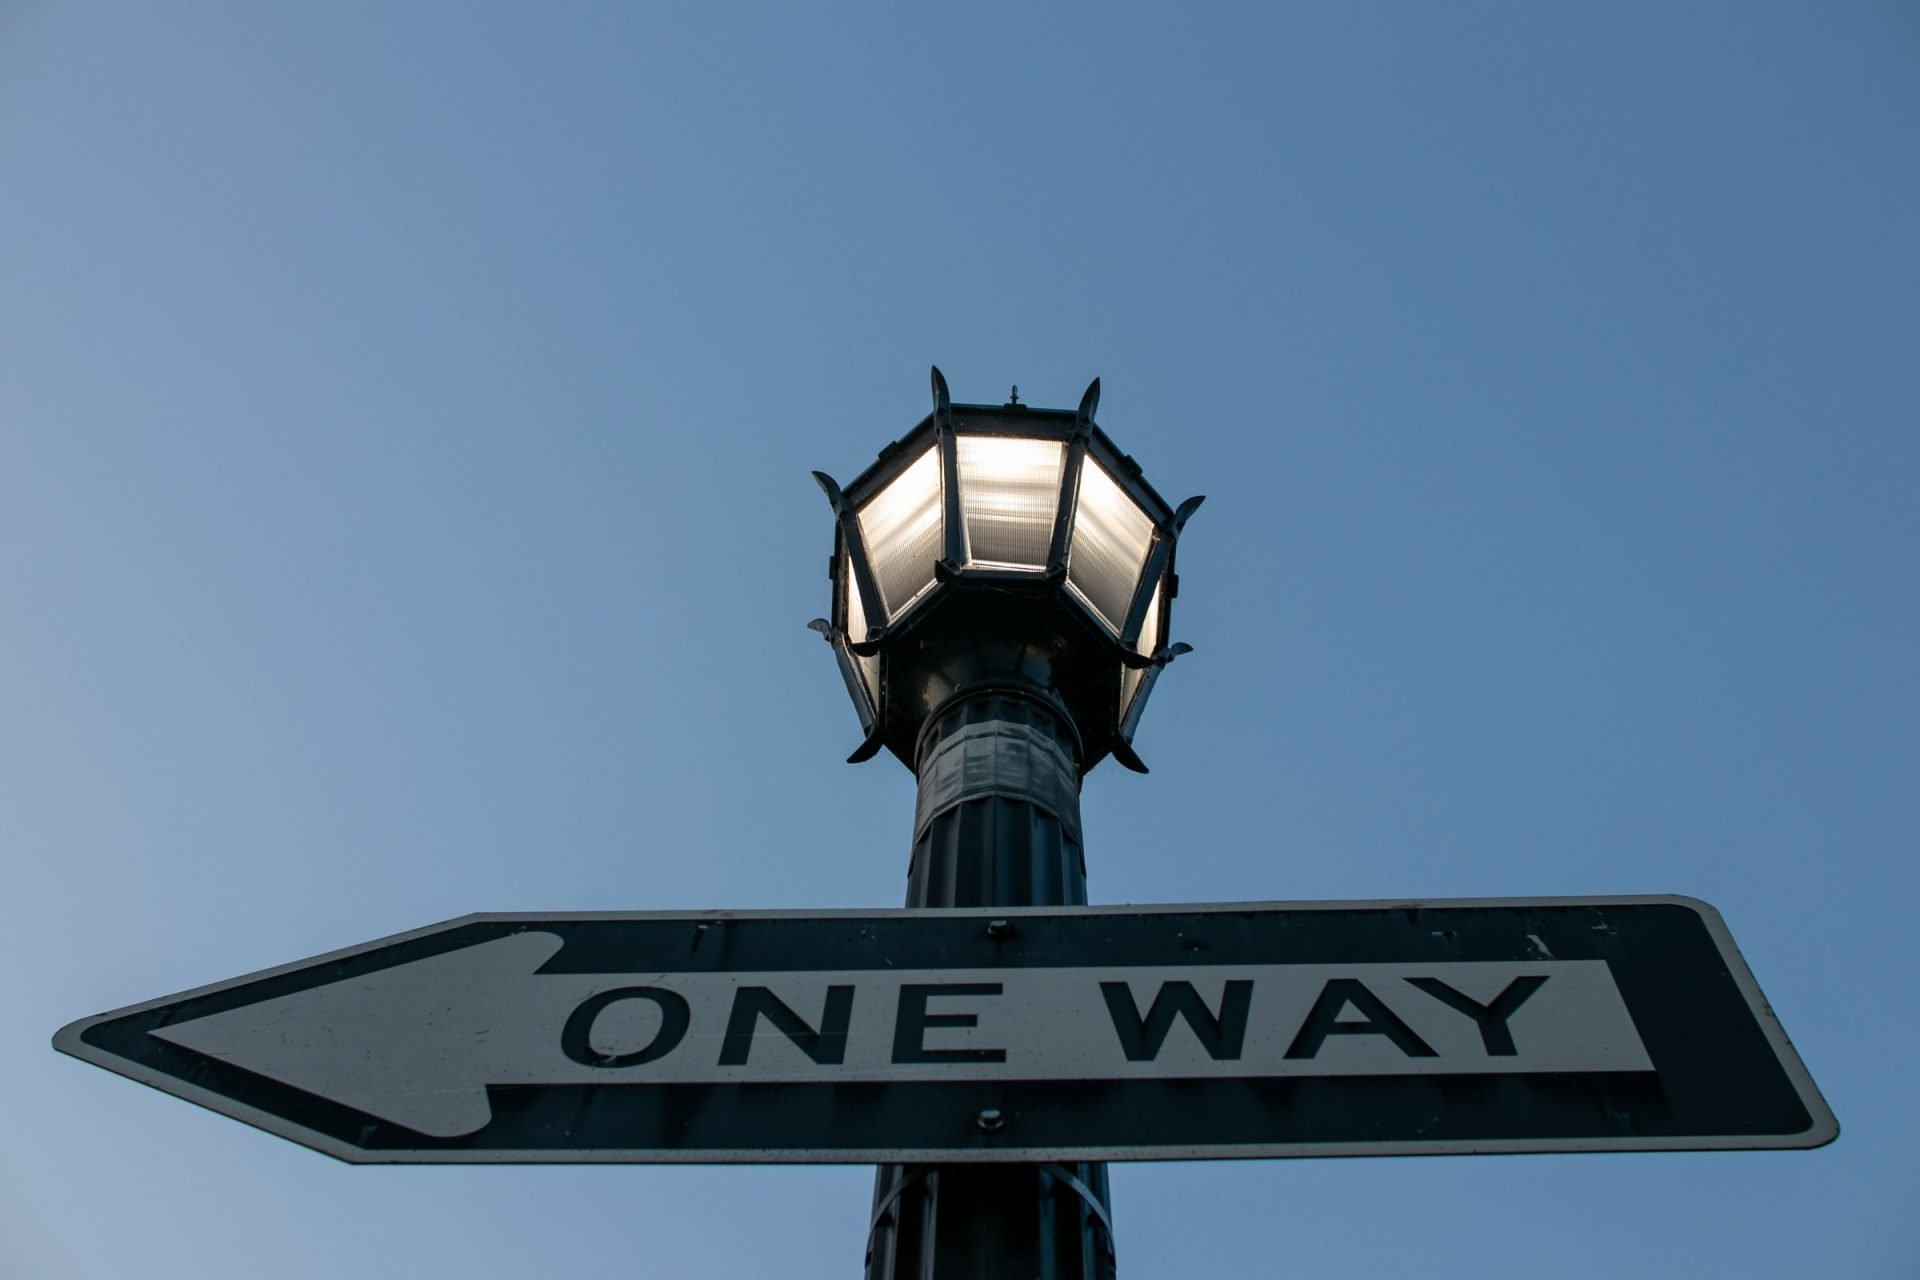 One Way Sign On Street Light Pole